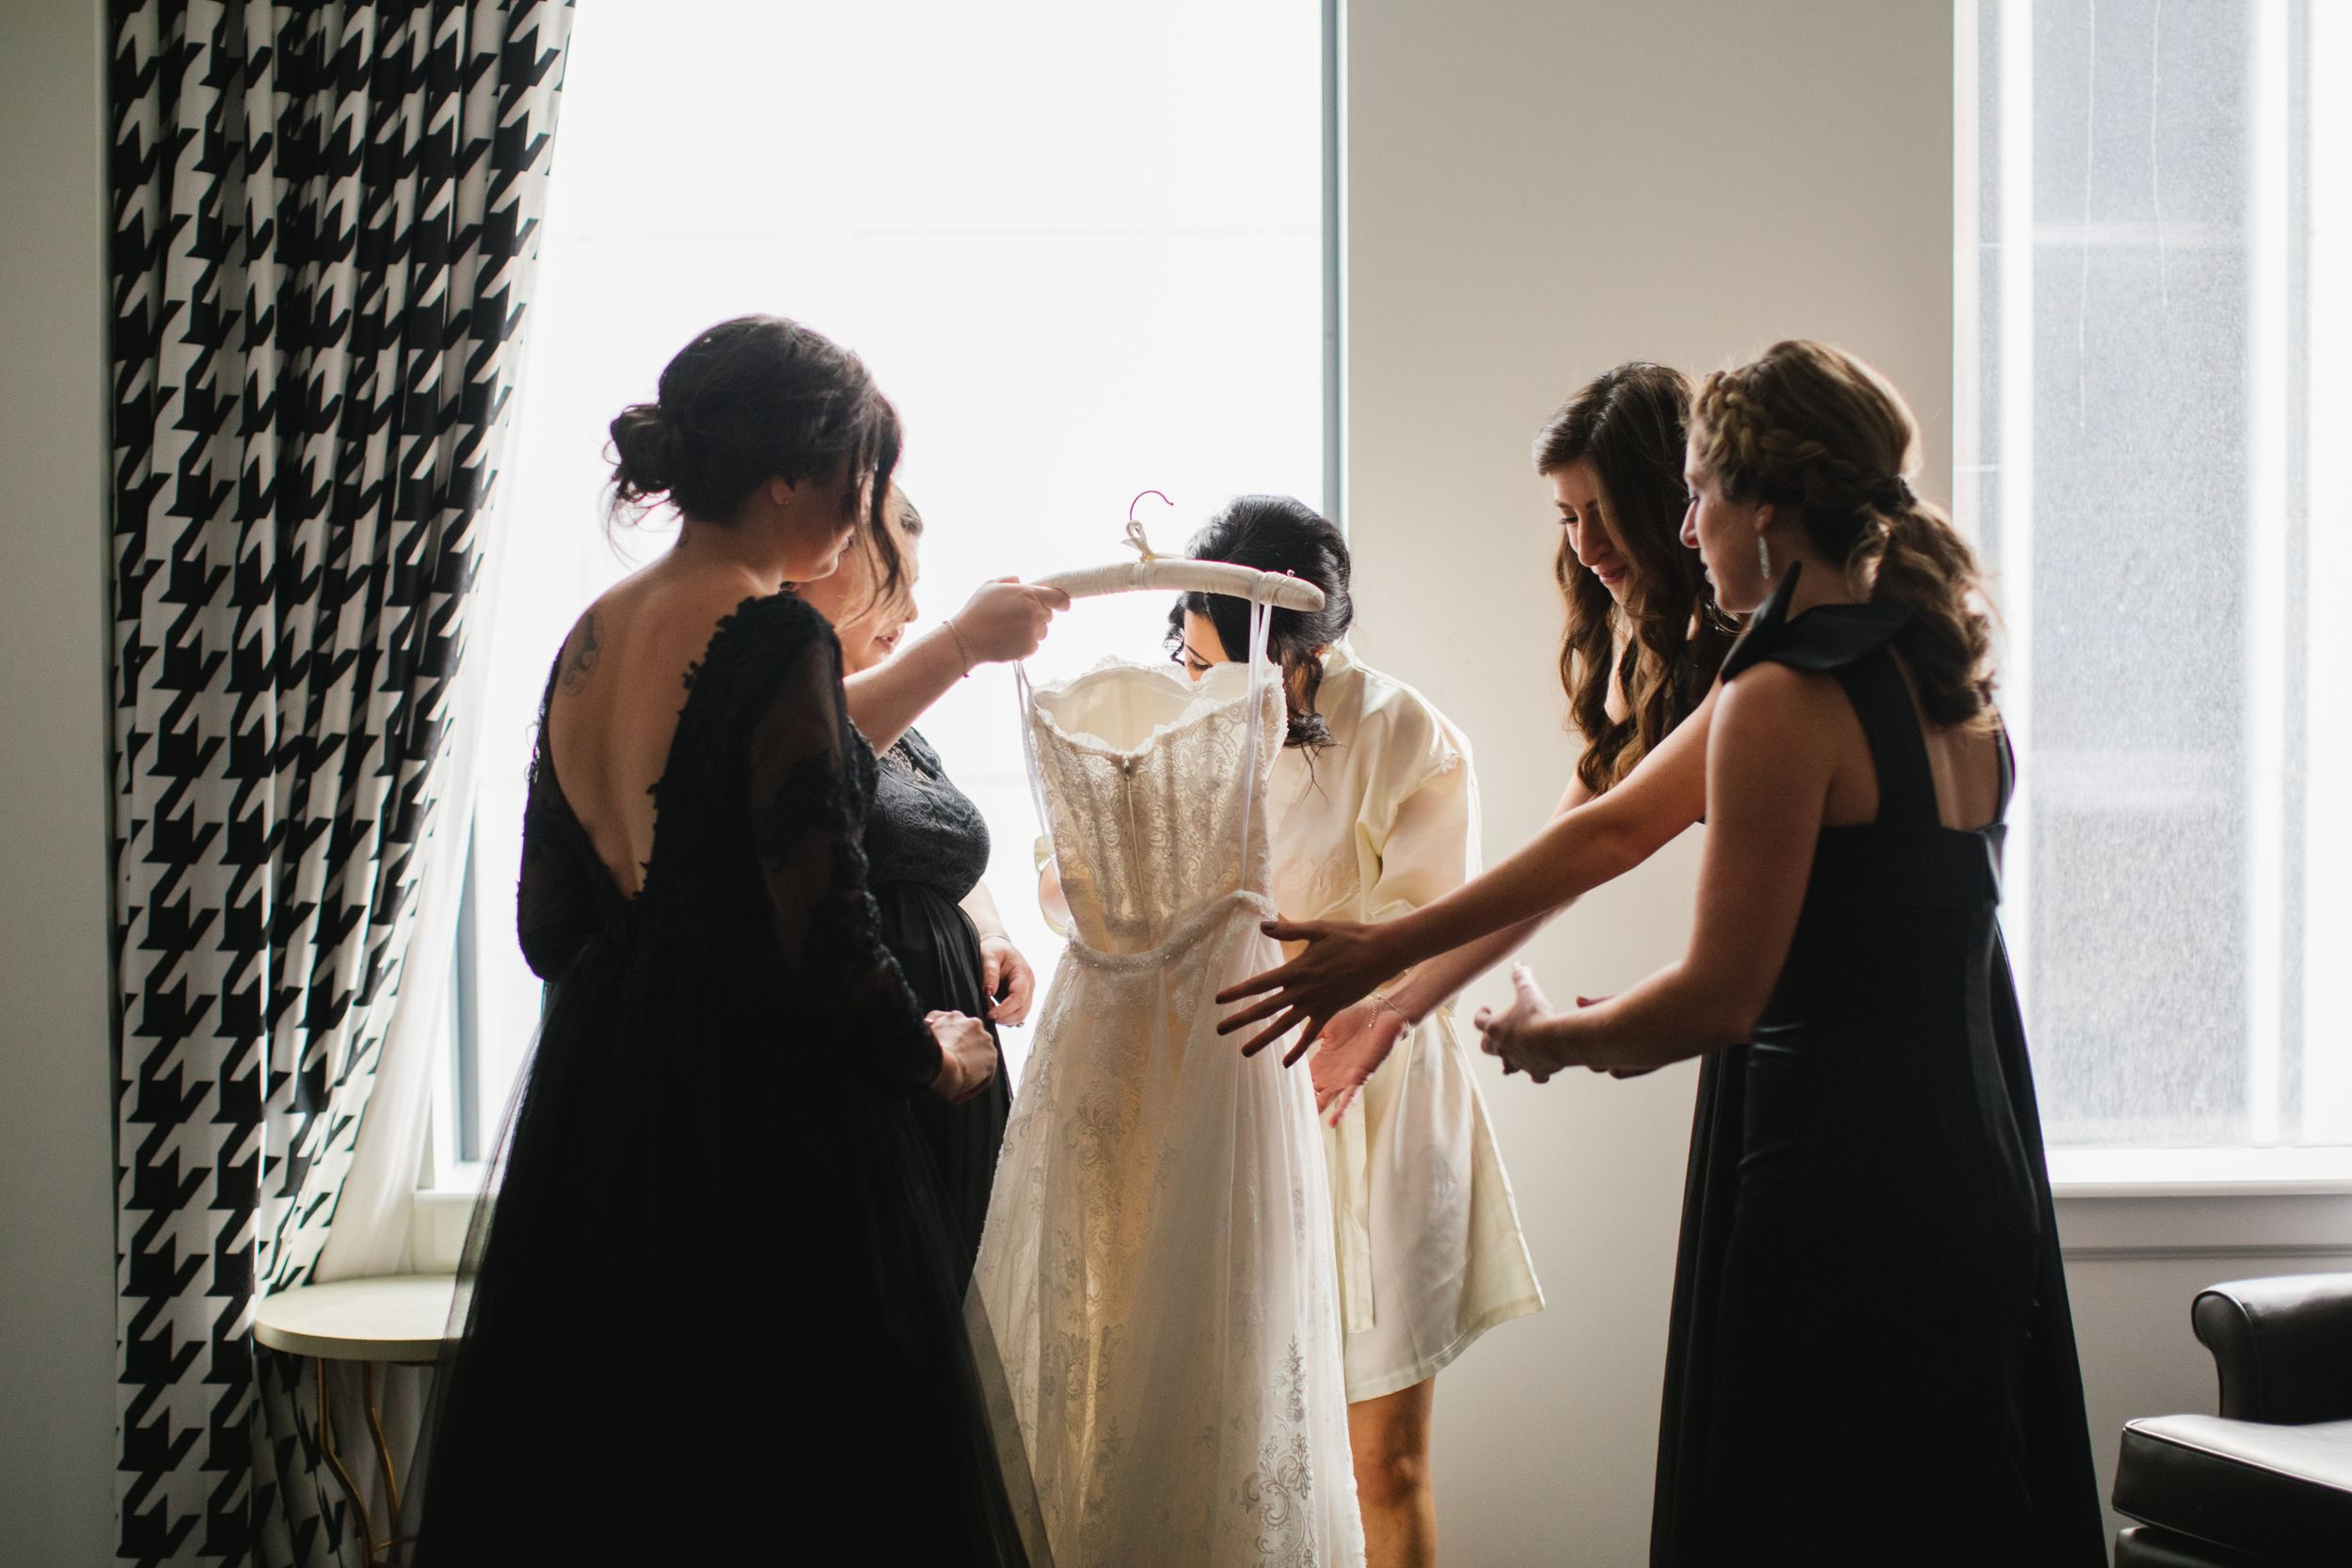 bride with bridesmaids putting on wedding dress in front of window